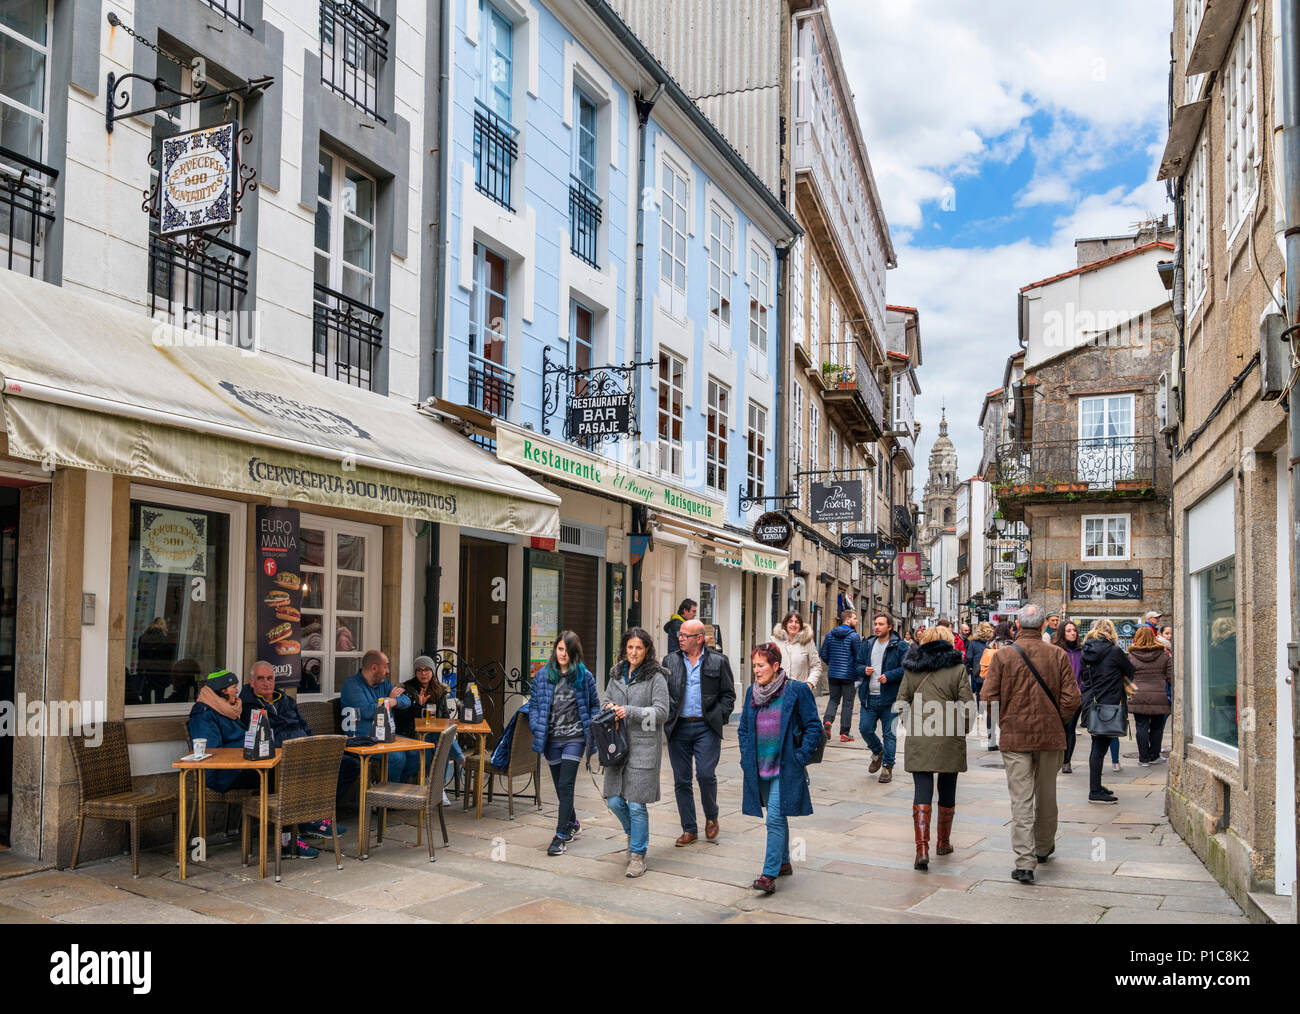 Cafes, bars and shops on RUa do Franco in the old town, Santiago de Compostela, Galicia, Spain - Stock Image